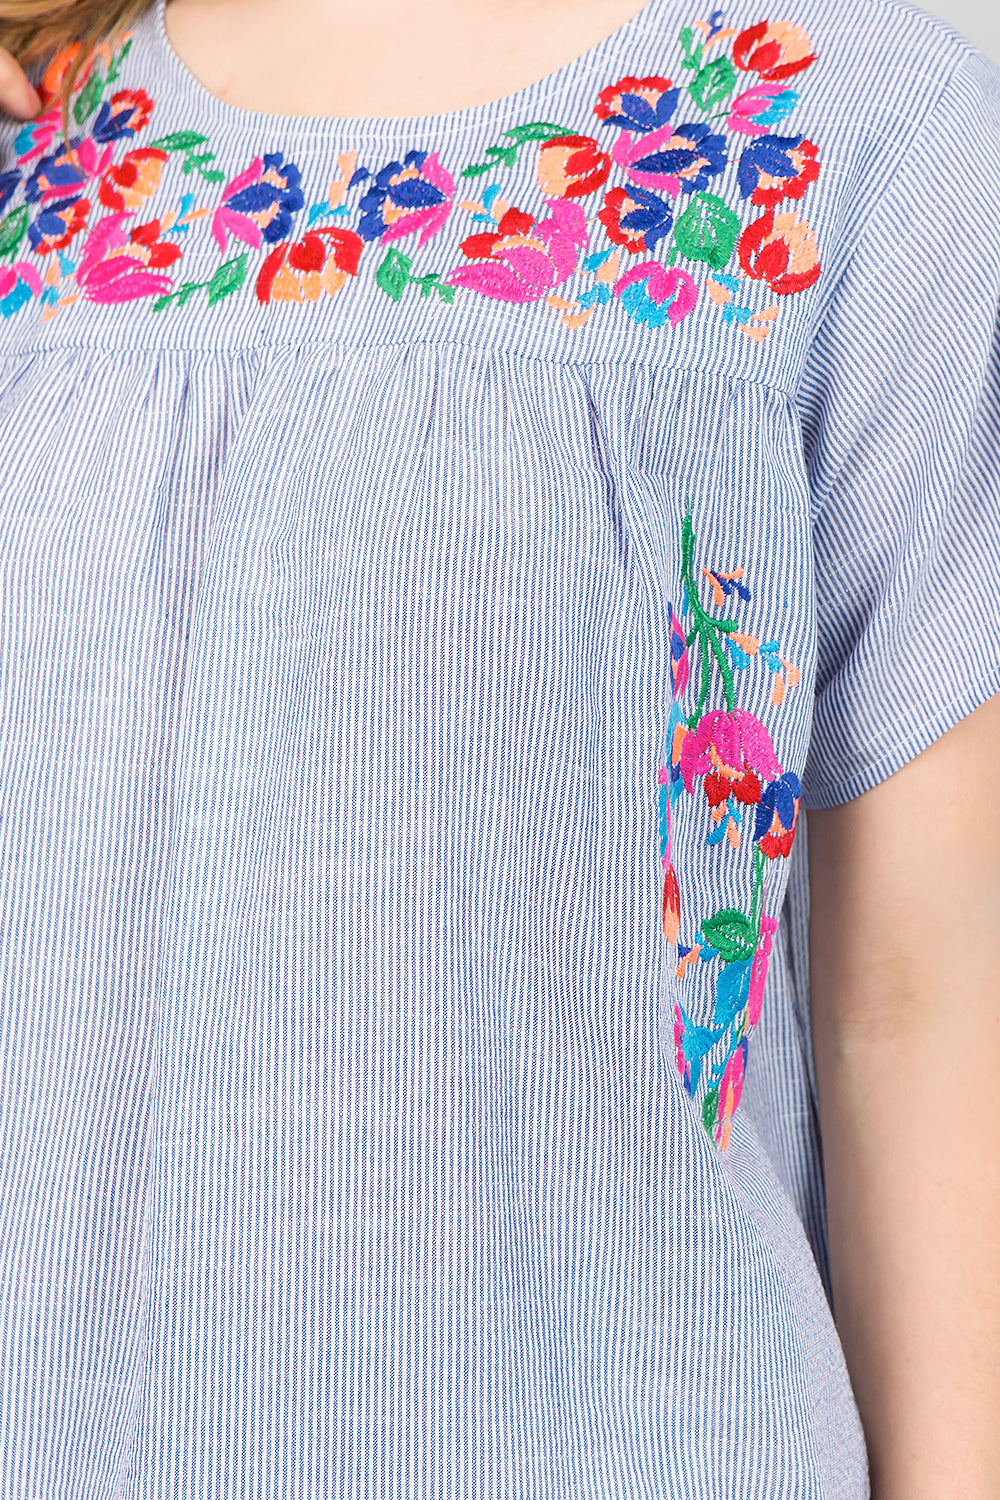 T2377 Floral Embroidery Top - Blue